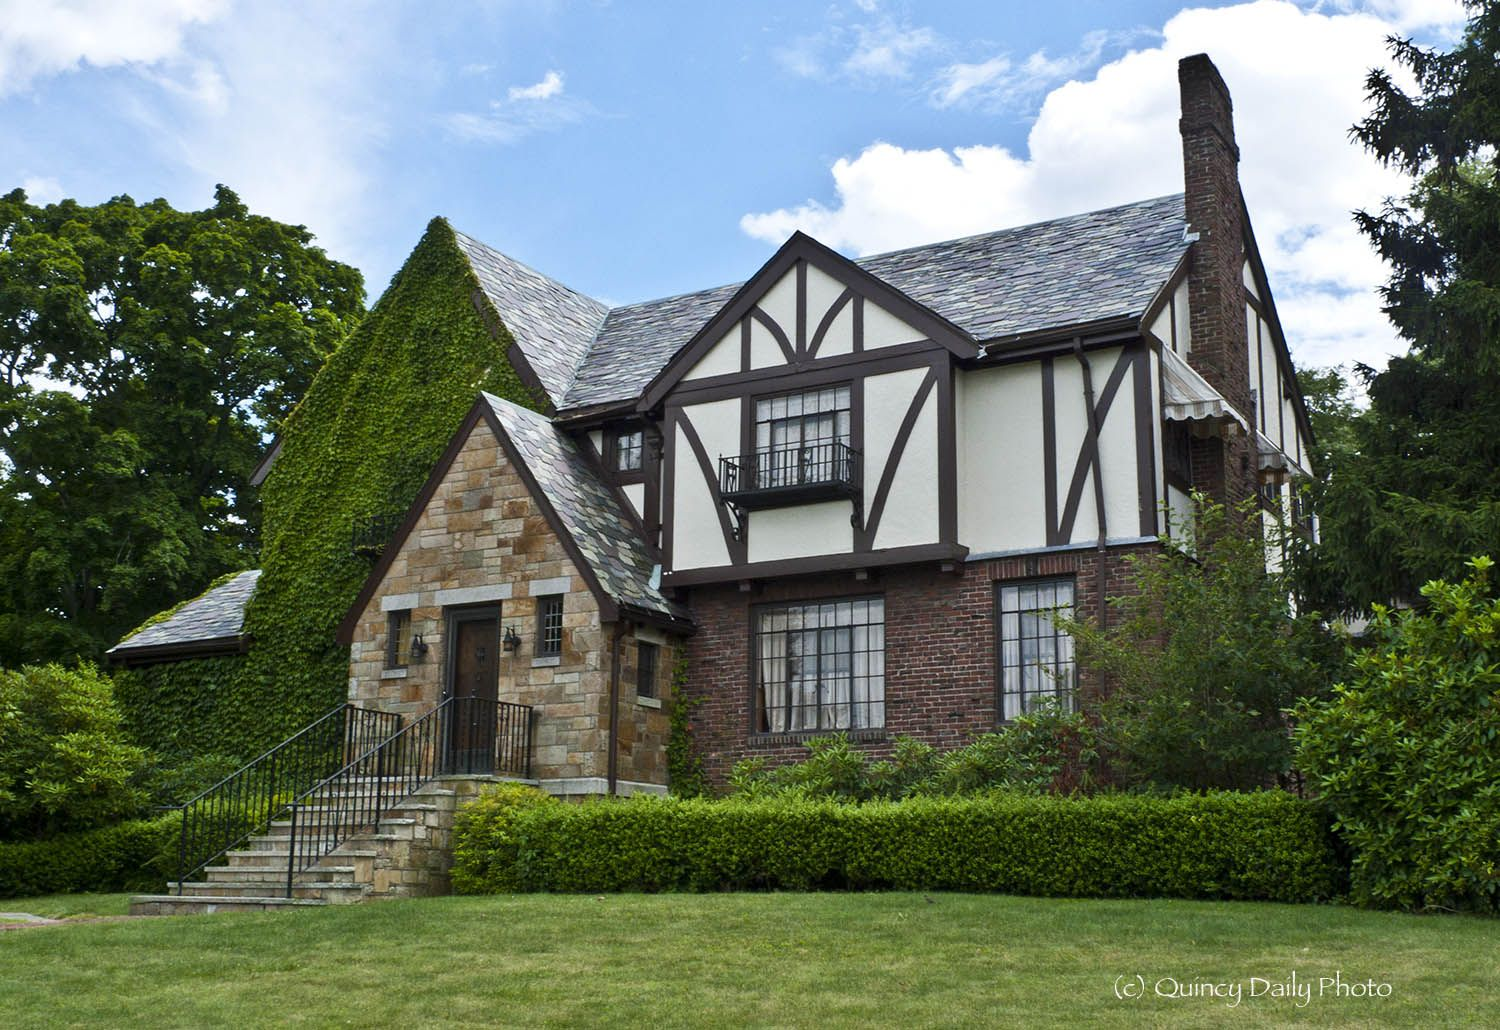 tudor style house this tudor revival style house located at 374 adams street was built. Black Bedroom Furniture Sets. Home Design Ideas